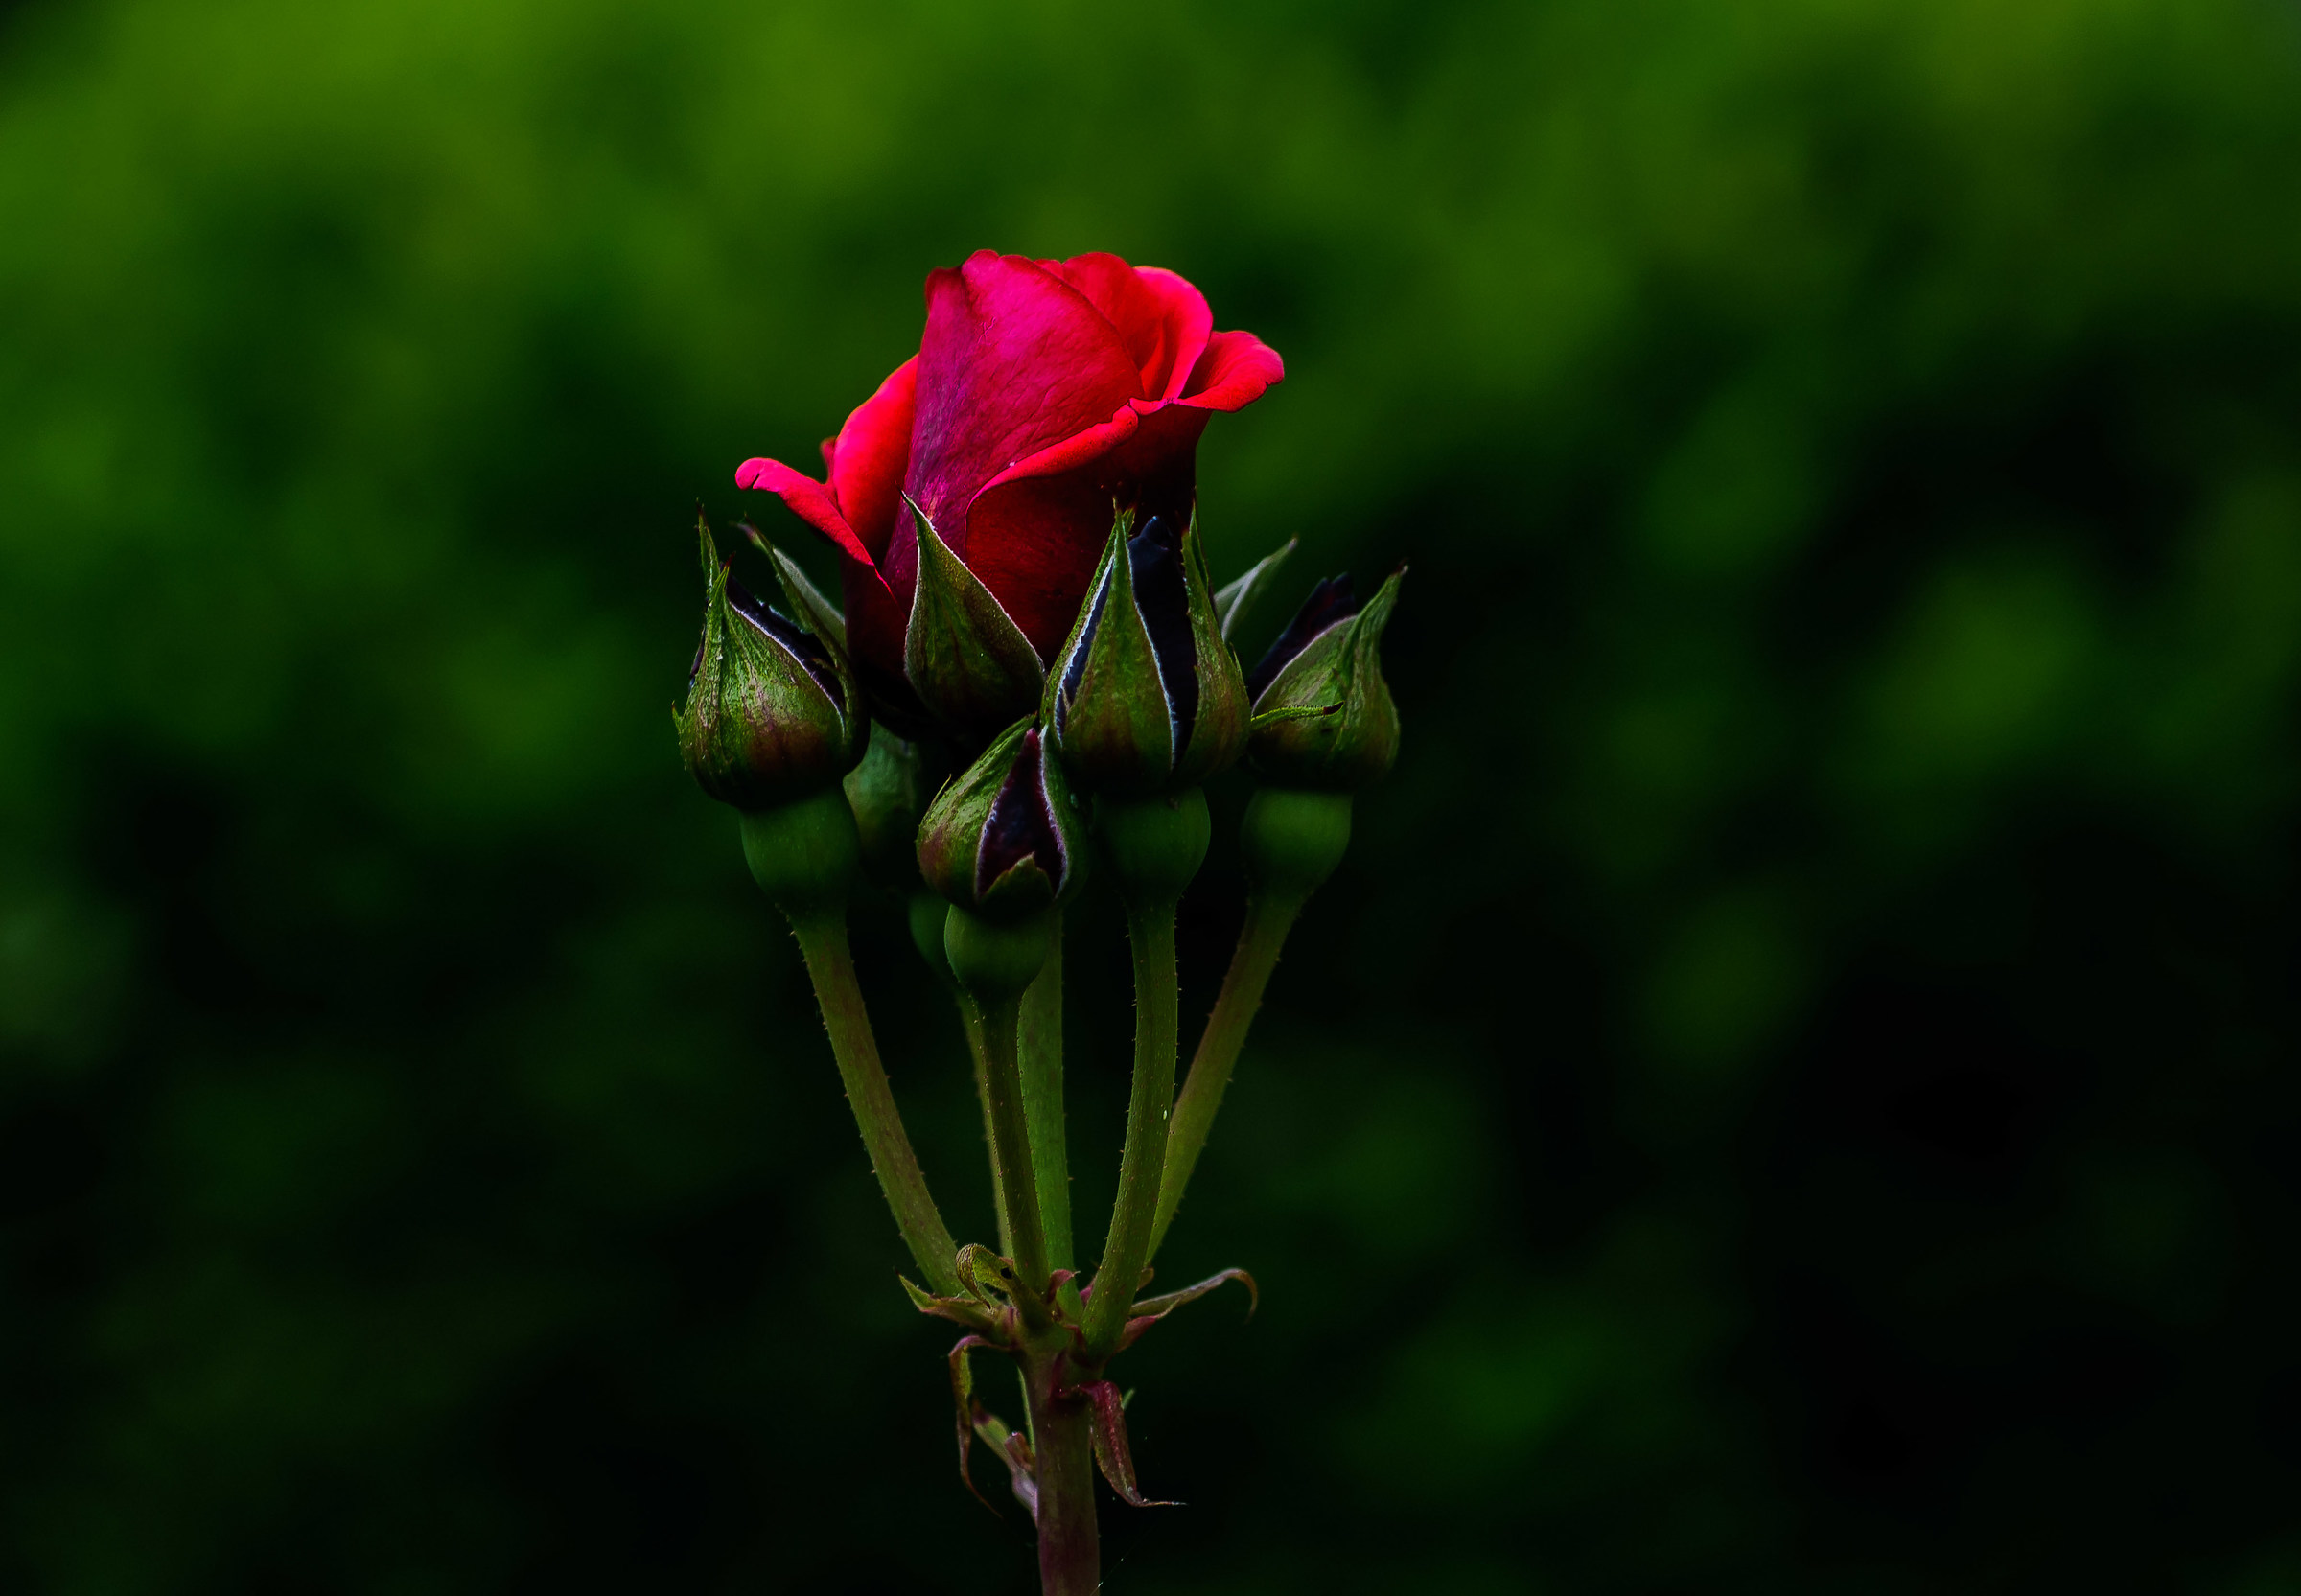 The rose is blooming...